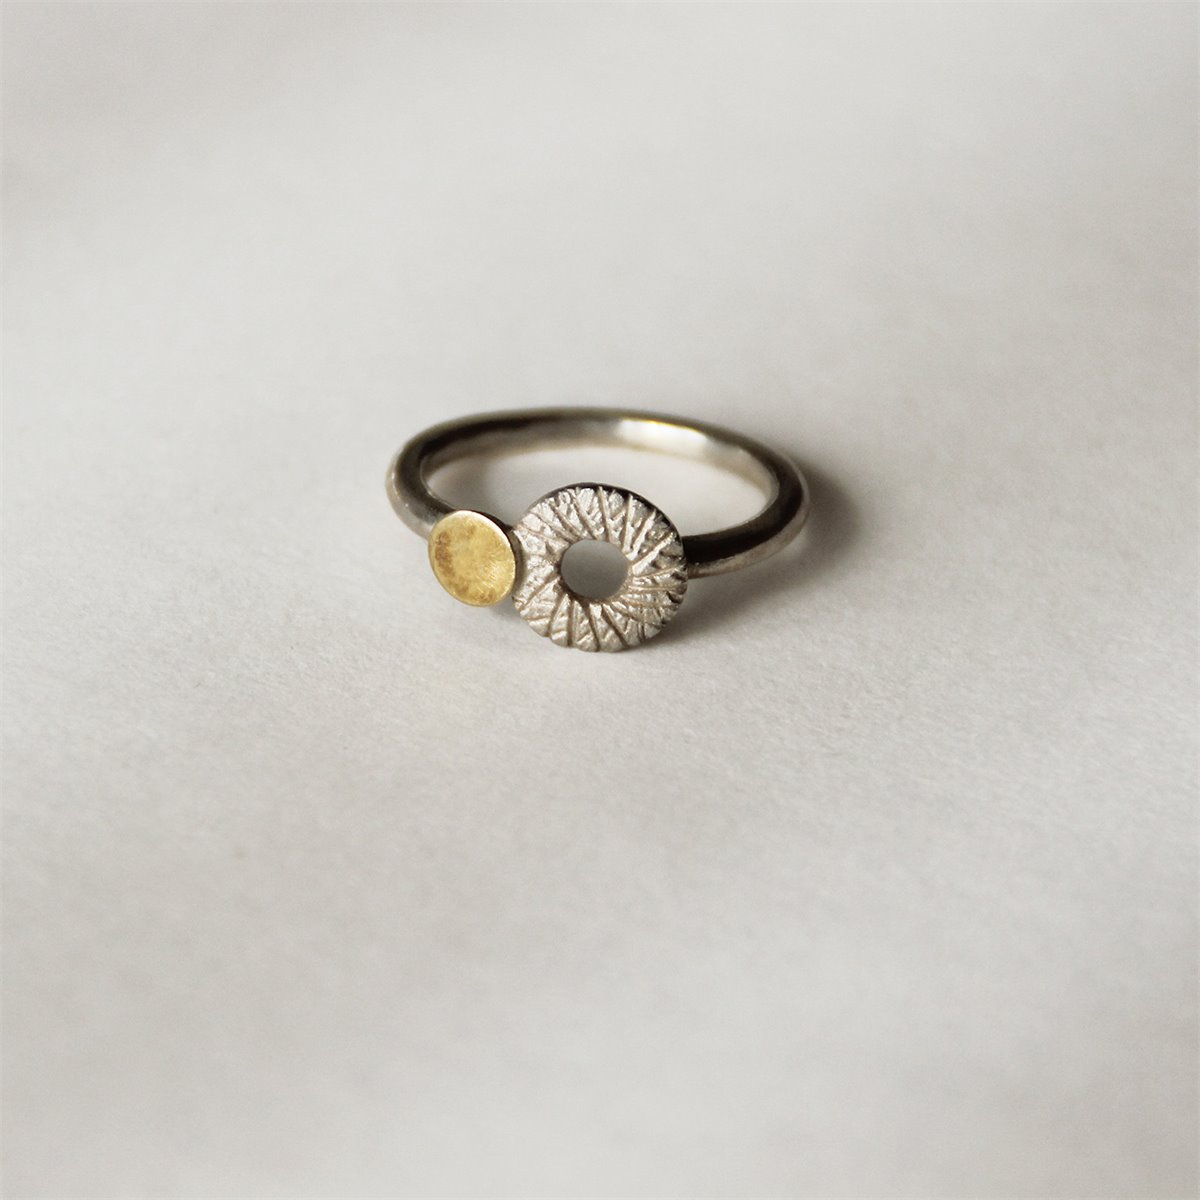 SILVER & GOLD RING . R1758